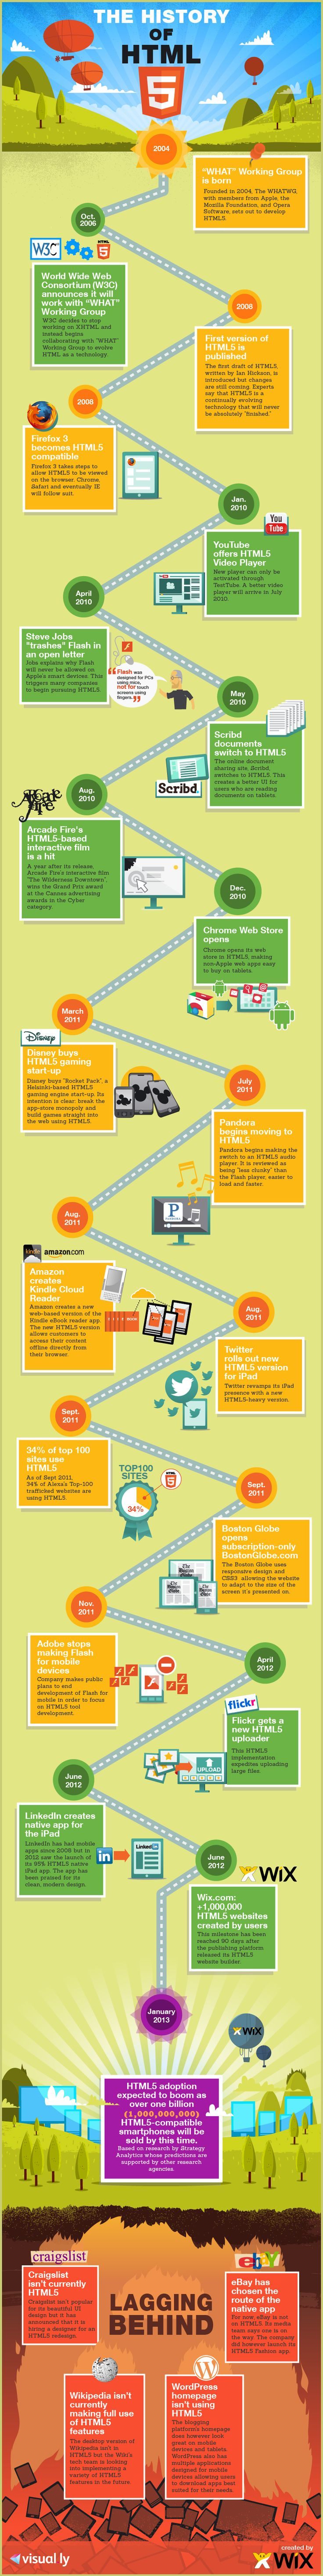 the history of html5